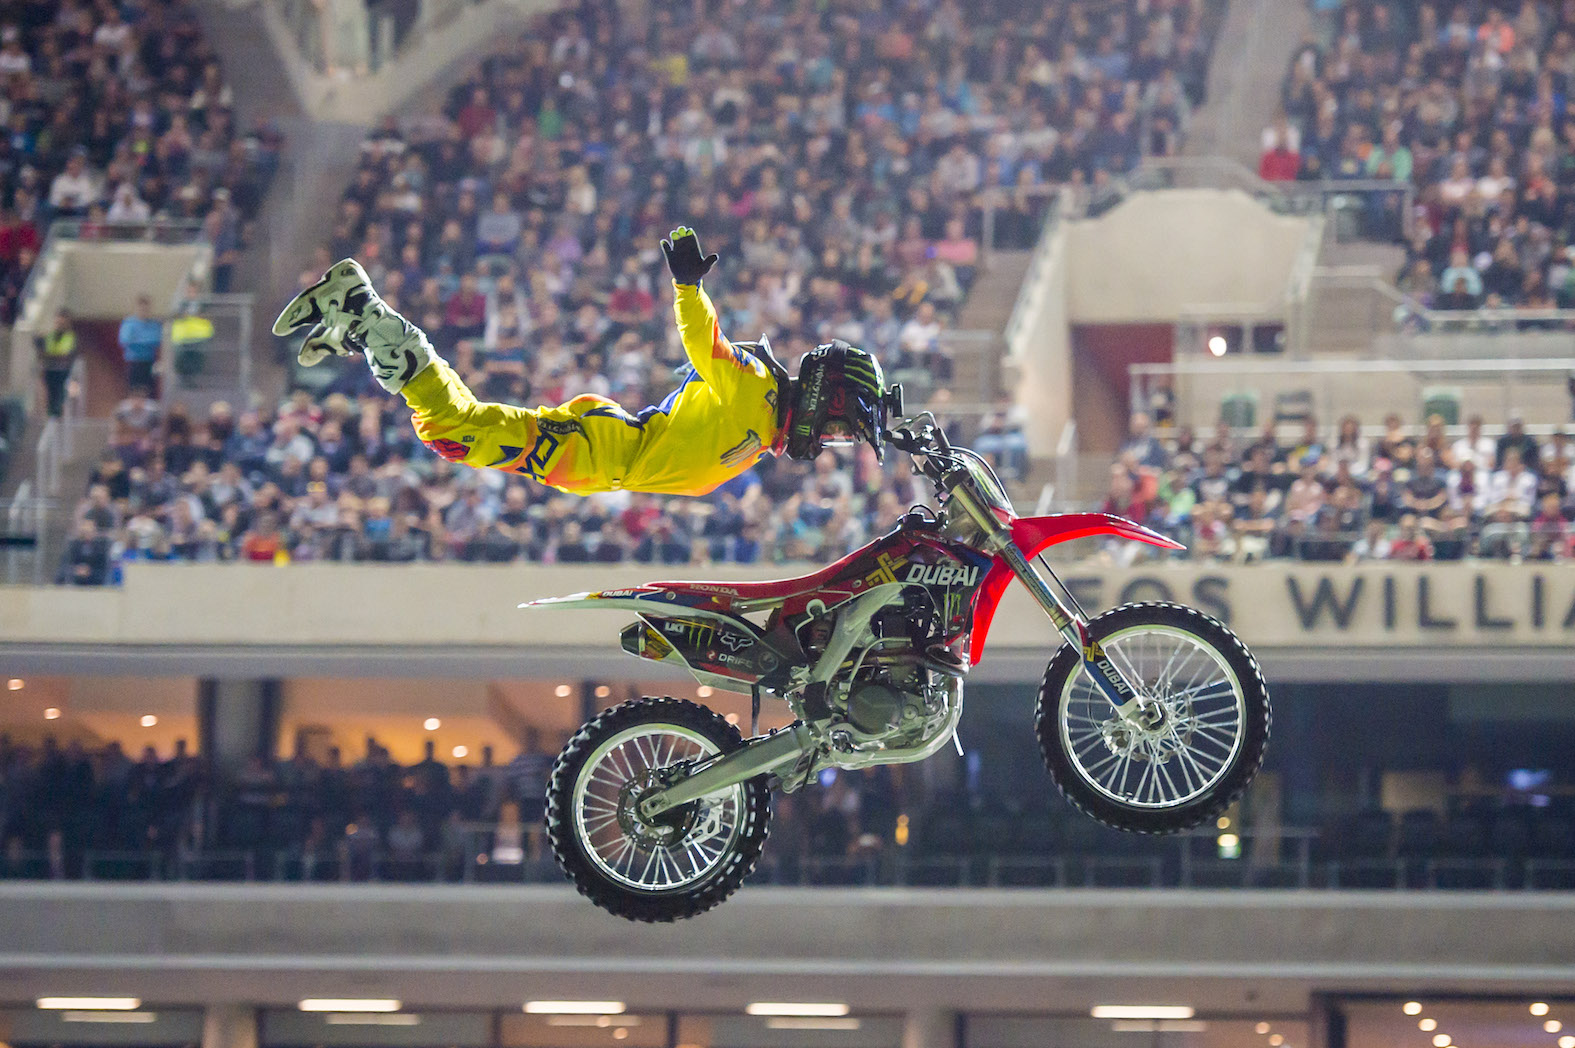 FMX rider Josh Sheehan performing at Nitro Circus Live